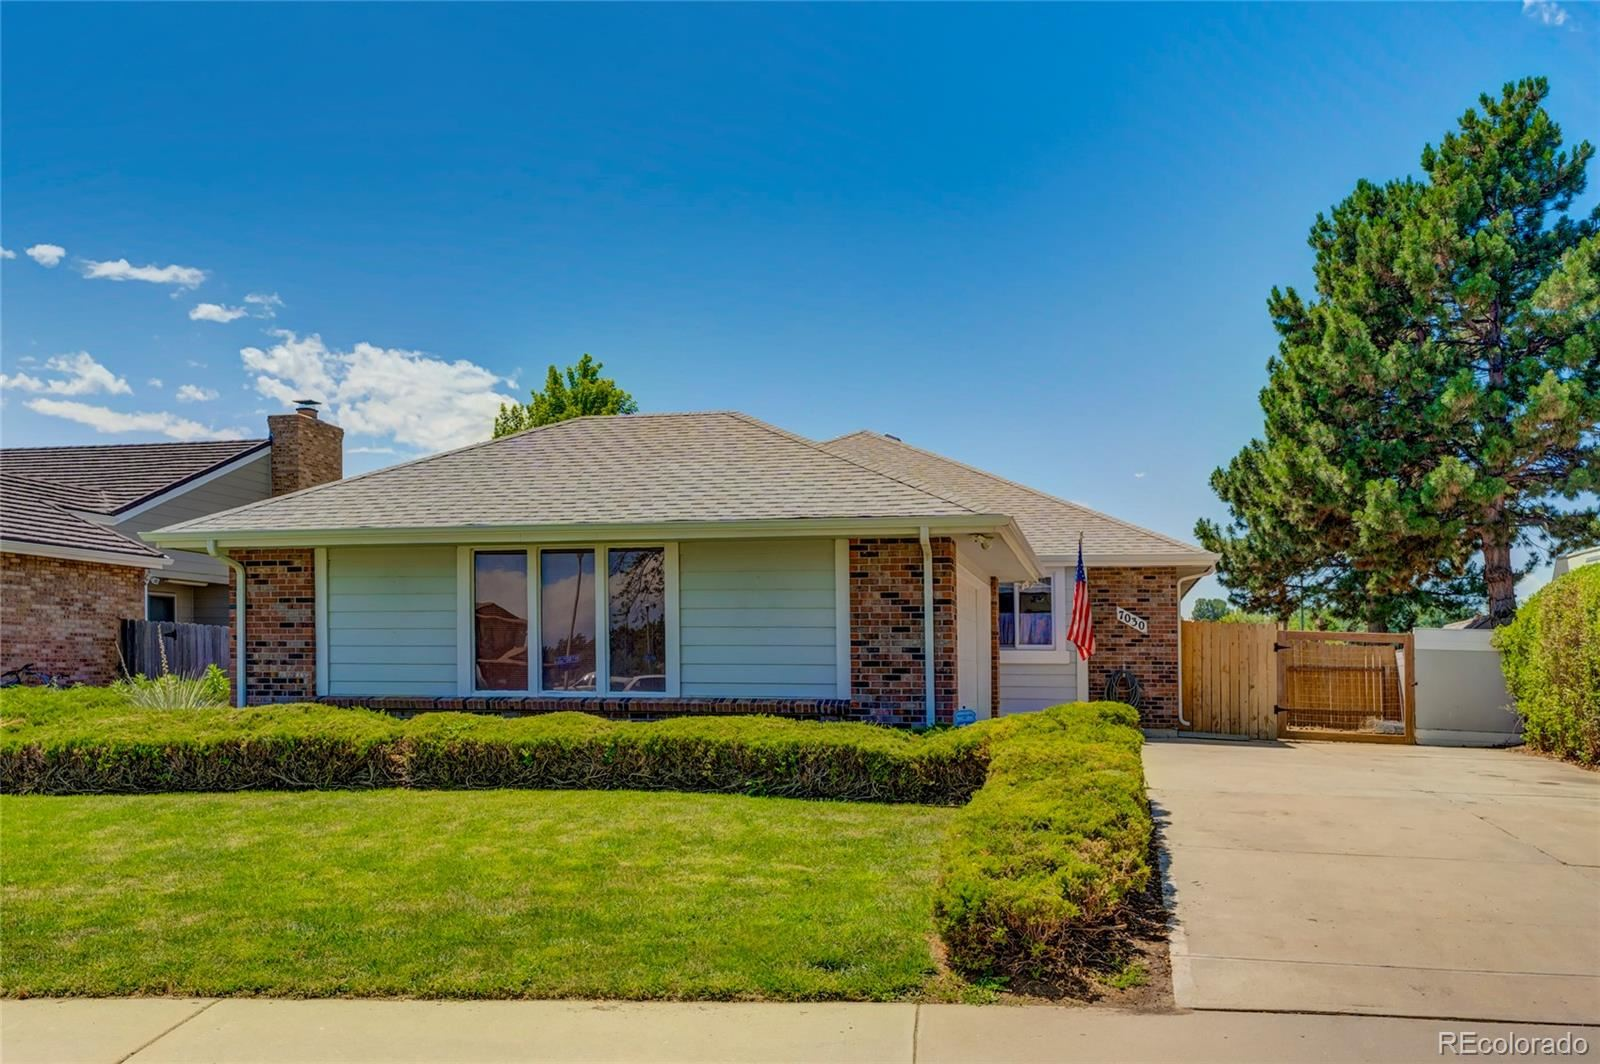 7030 W 80th Place, Arvada, CO 80003 - #: 5501112